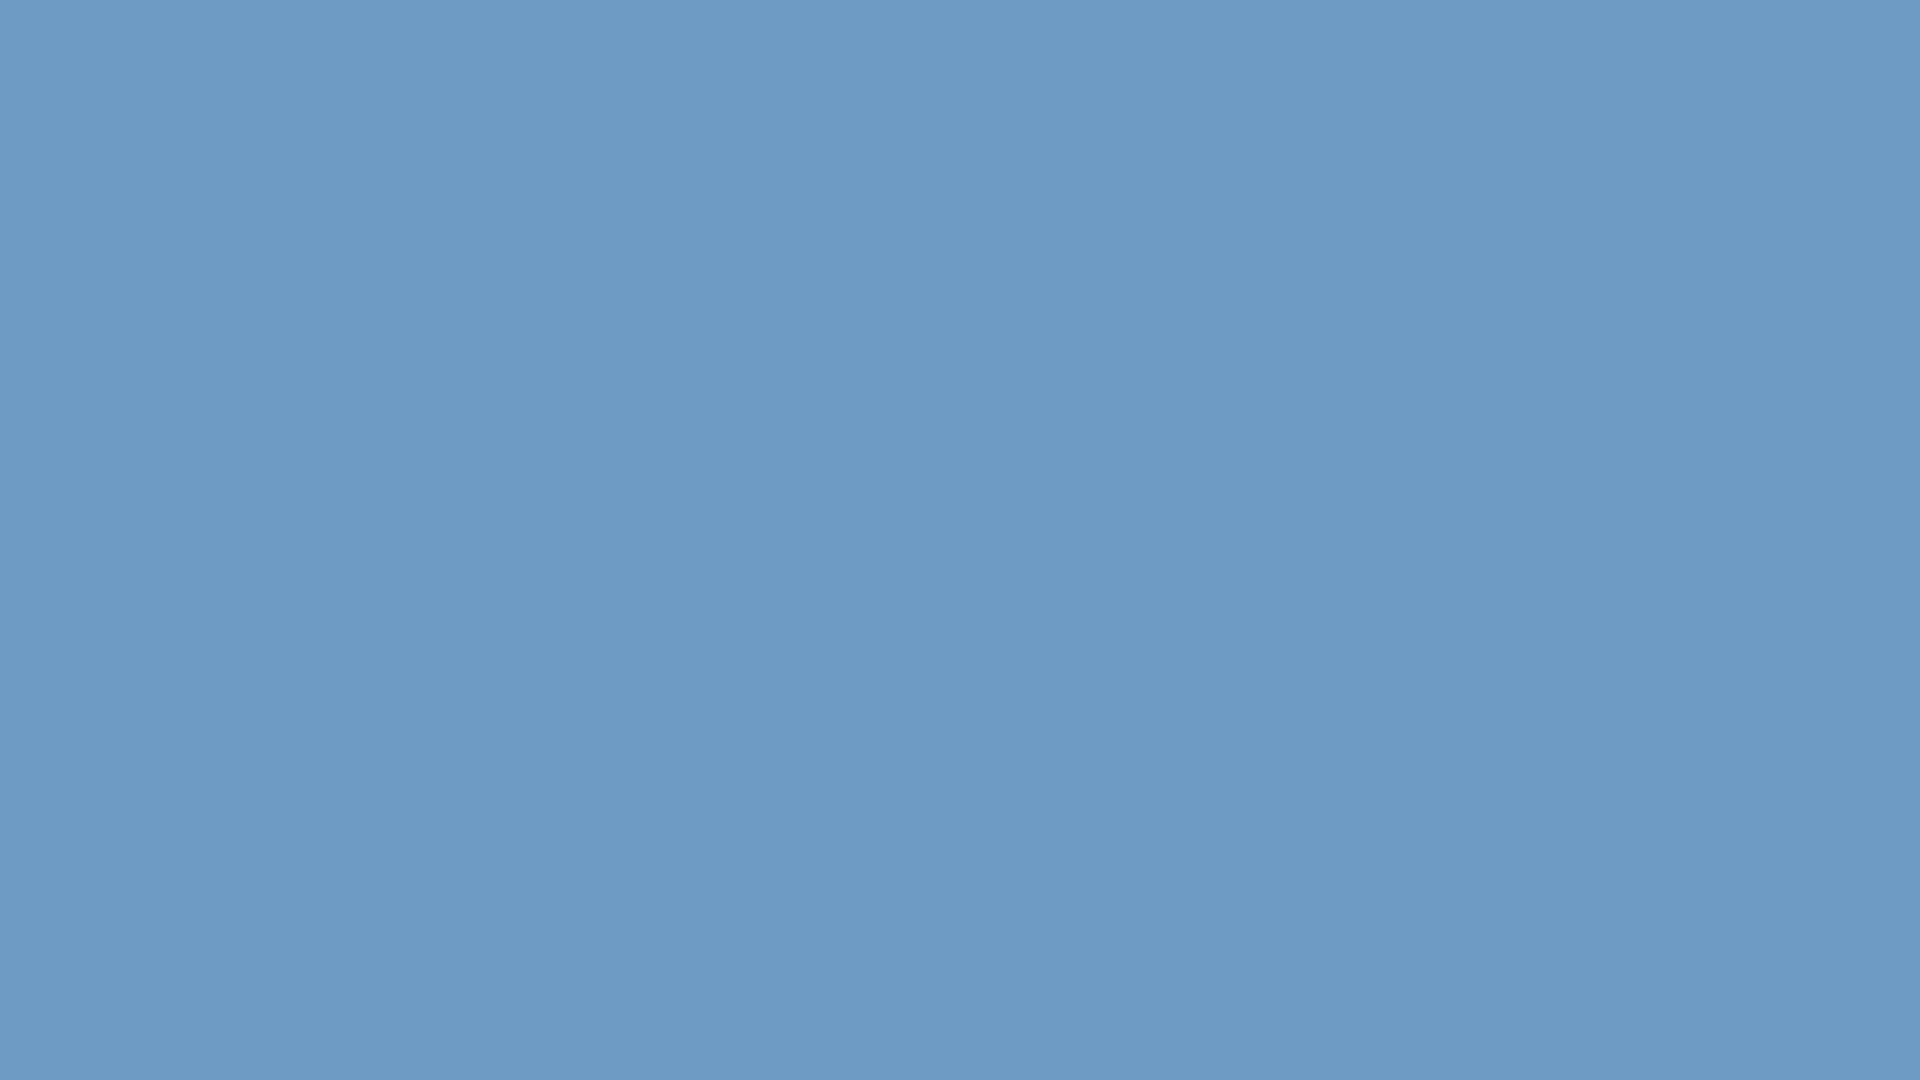 1920x1080 Cerulean Frost Solid Color Background